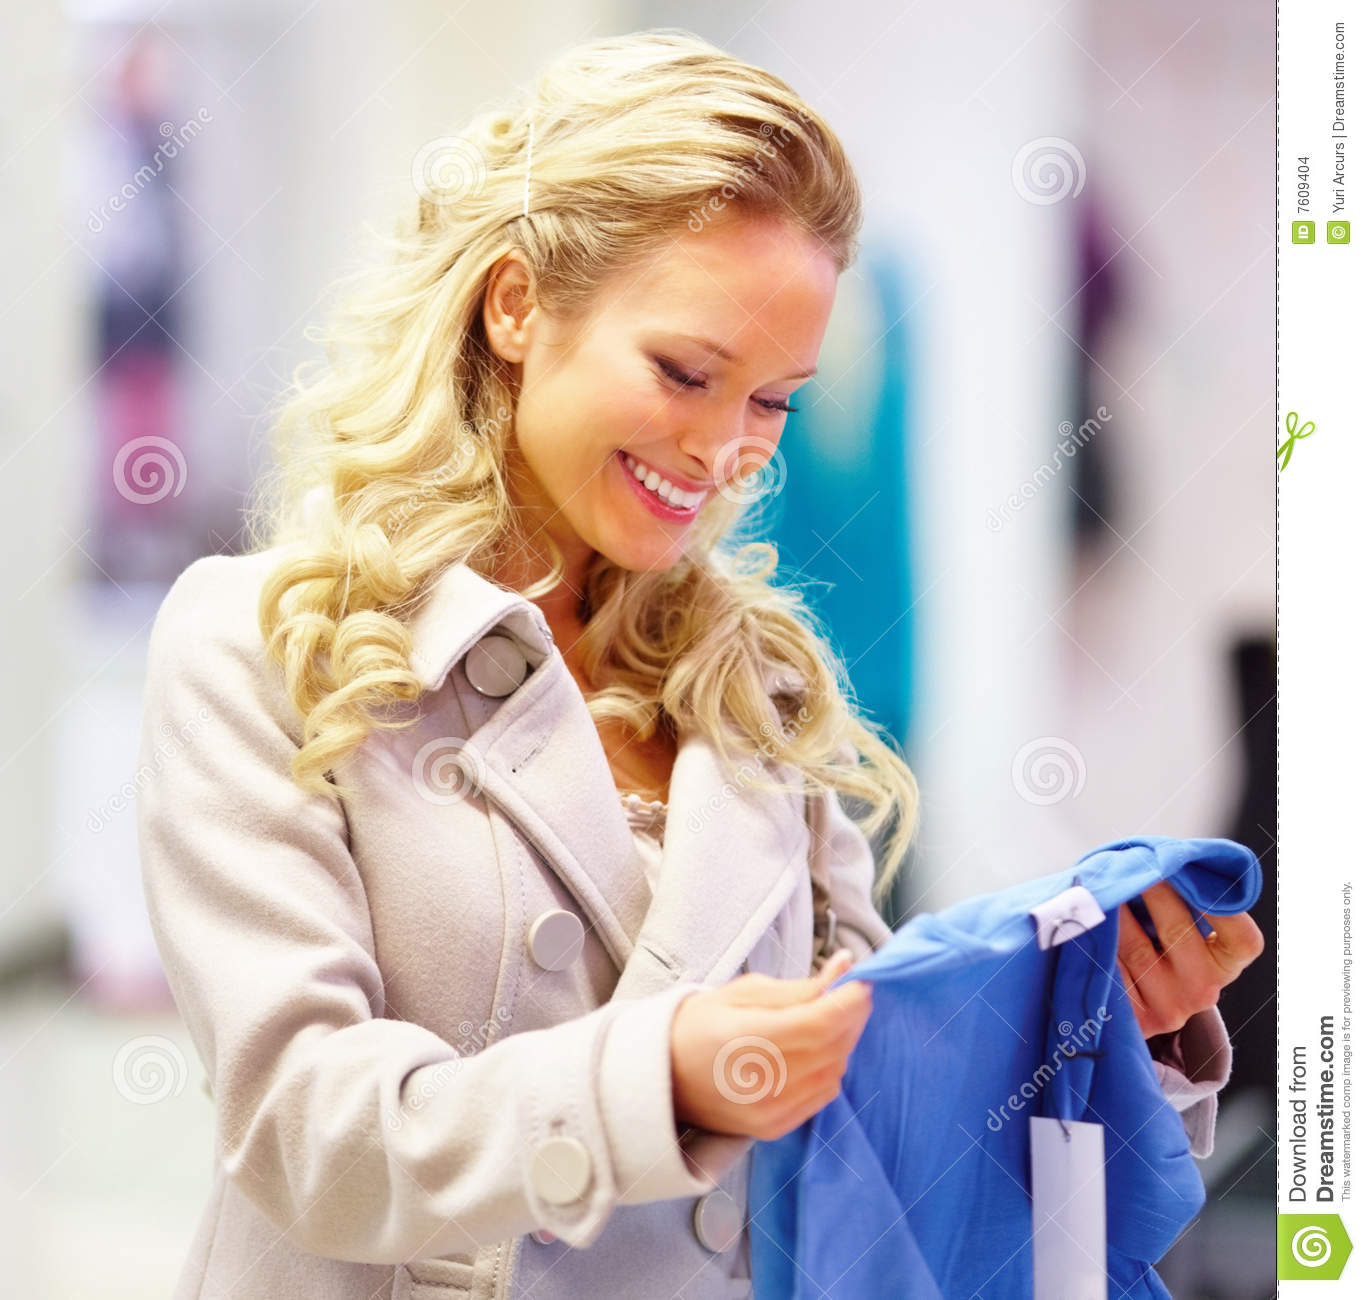 Happy Young Lady With A Sweet Smile Shopping Stock Photo